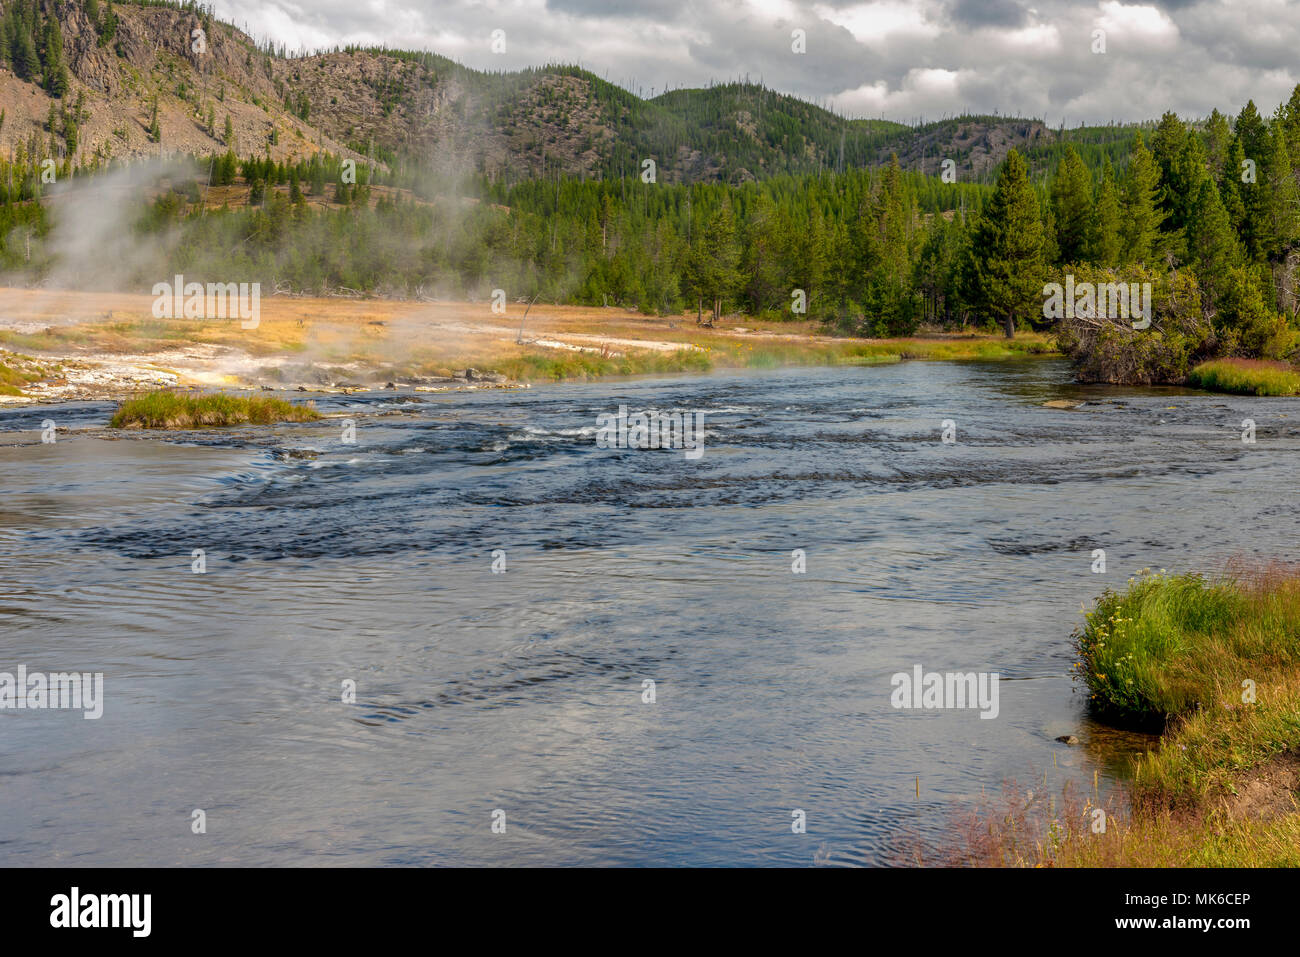 Wide view od slow moving river , meadow and forest under cloudy sky. - Stock Image